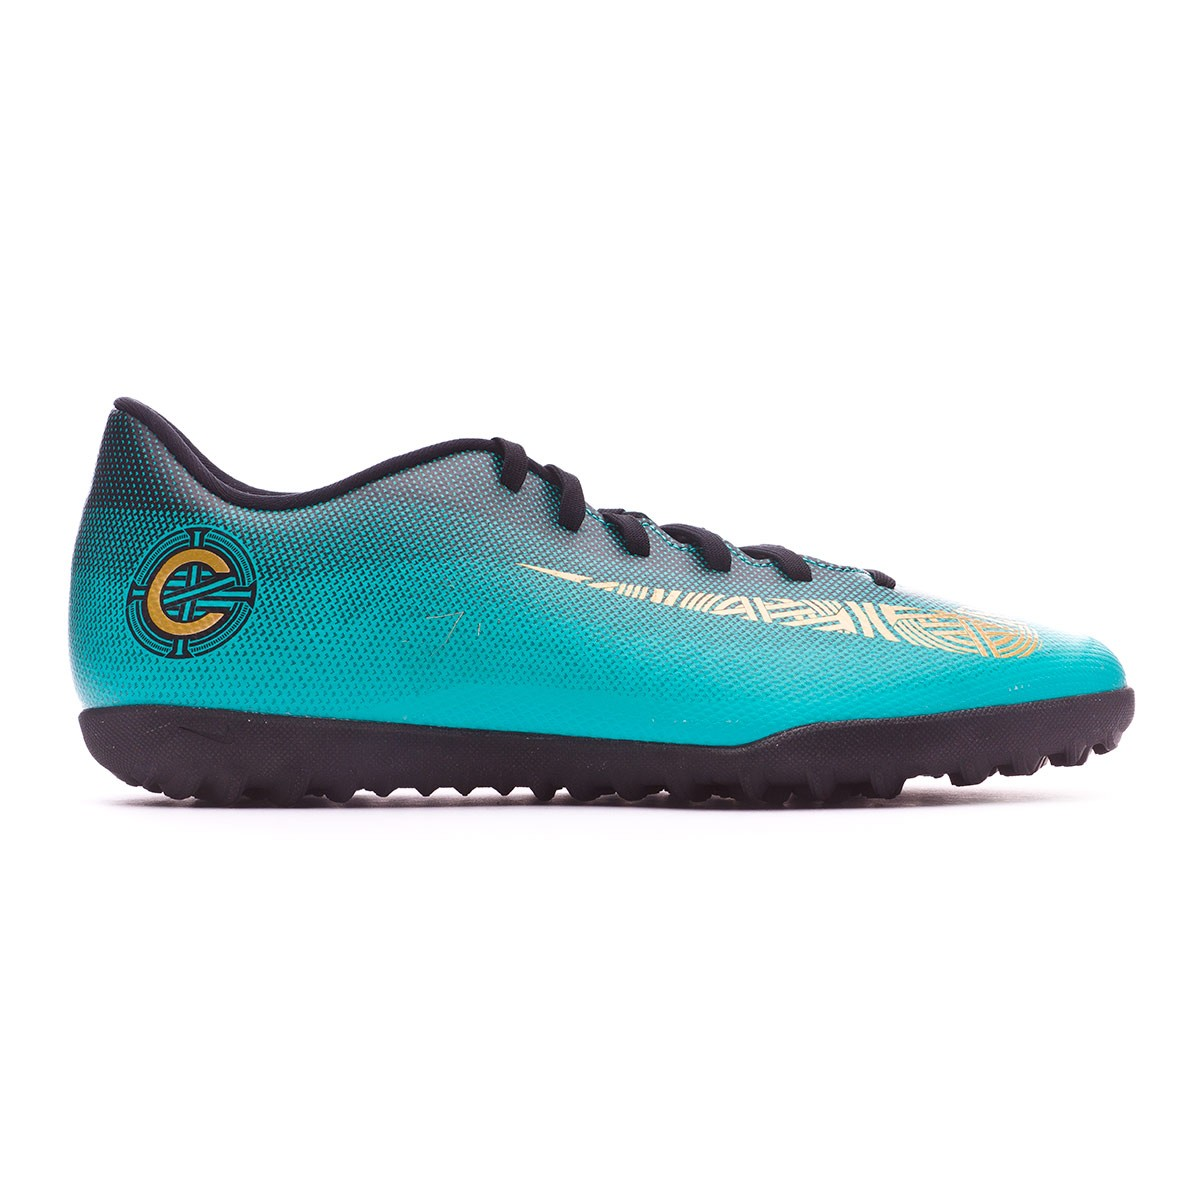 Zapatilla Mercurial VaporX XII Club CR7 Turf Clear jade Metallic vivid gold Black